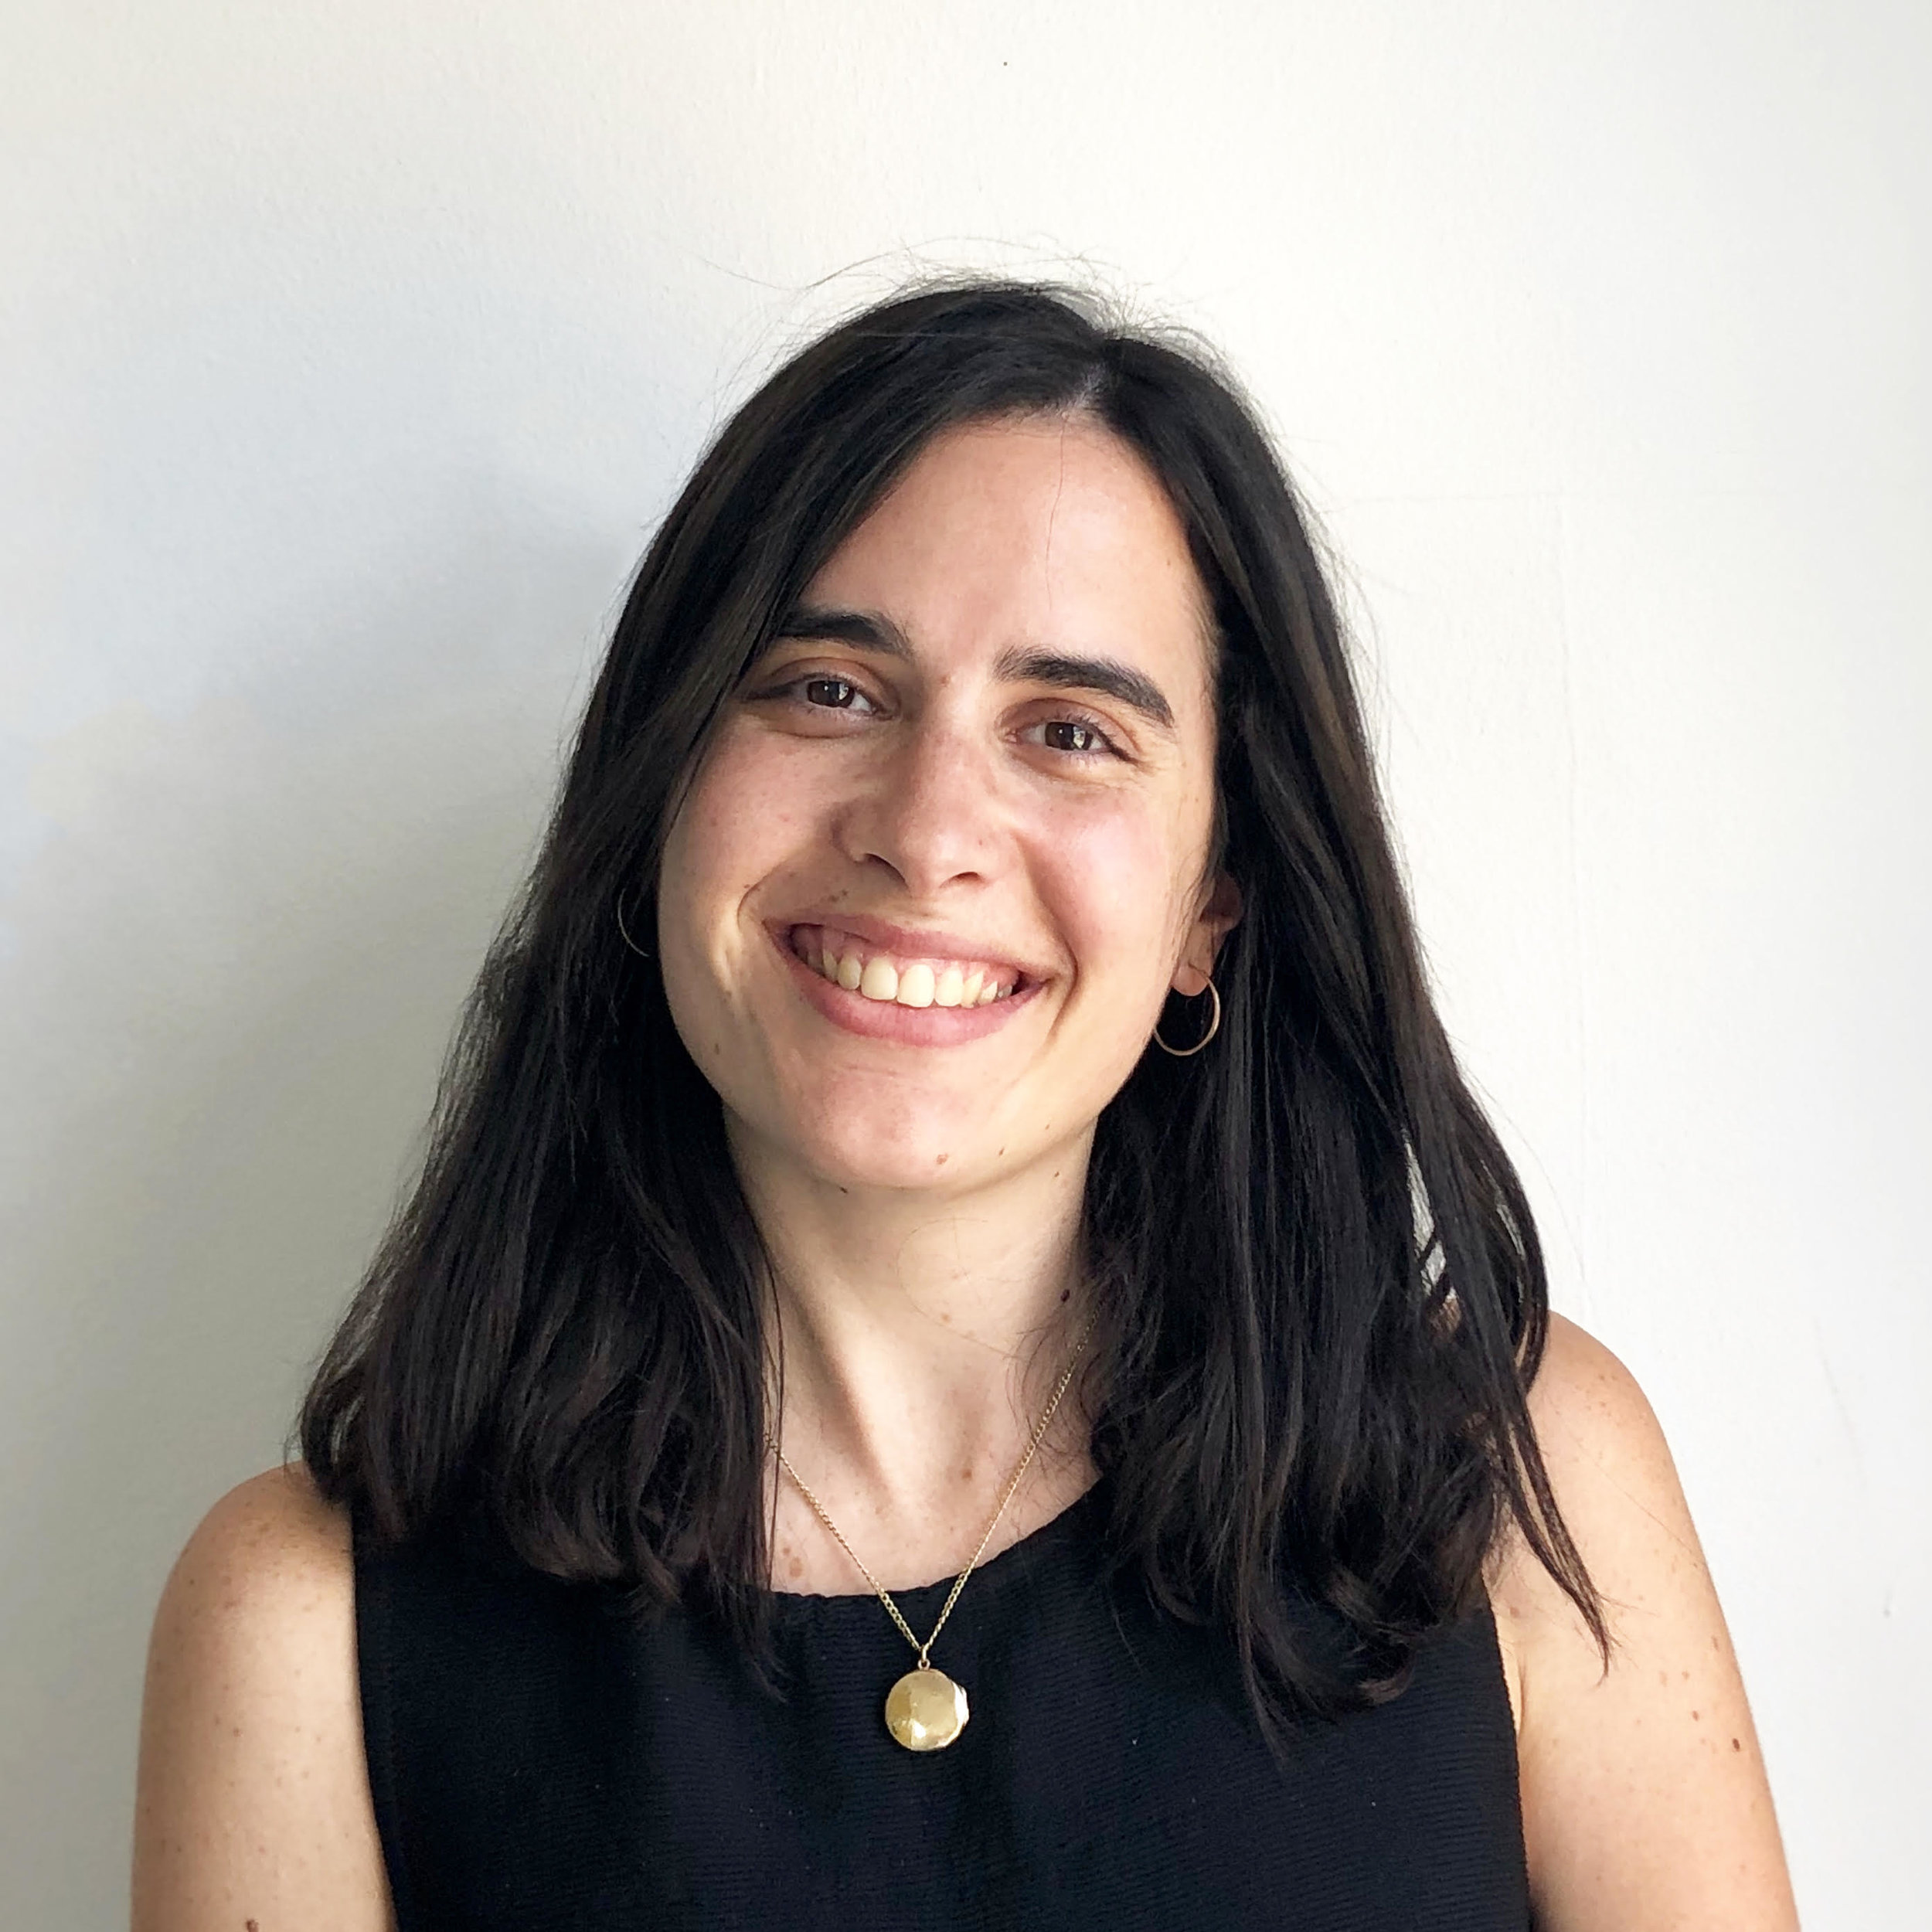 Helena Bonastre - Hi! My name is Helena and I'm a director, animator and illustrator from Barcelona based in London. I studied directing film at Met Film School (2016) and I graduated from an MA in Character Animation at Central Saint Martins (2018). I have experience working as an animator, assistant animator and storyboard artist for production companies such as Nexus Studios, Lupus Films, BBC and Passion Pictures (including the box office hit feature film Paddington 2).My graduation animated film 61 Beehive Street (2018) has won Best Animated Film at Oaxaca FilmFest and Underwire Festival (UK) and has been selected for international festivals including Palm Springs Short Fest (US). Previously, I directed the live action fantasy short film Franz (2016), which was also selected in worldwide fantasy festivals including Mirror Mountain Film Festival (Canada) and The Short Cinema Leicester International Film Festival (UK).I also work as a freelance illustrator taking different commissions and I've illustrated for the book Taller de Yoga para Niños (2017) by Ariadna Civit and Marianna Roigé and published by Alba Editoral (Barcelona, Spain).